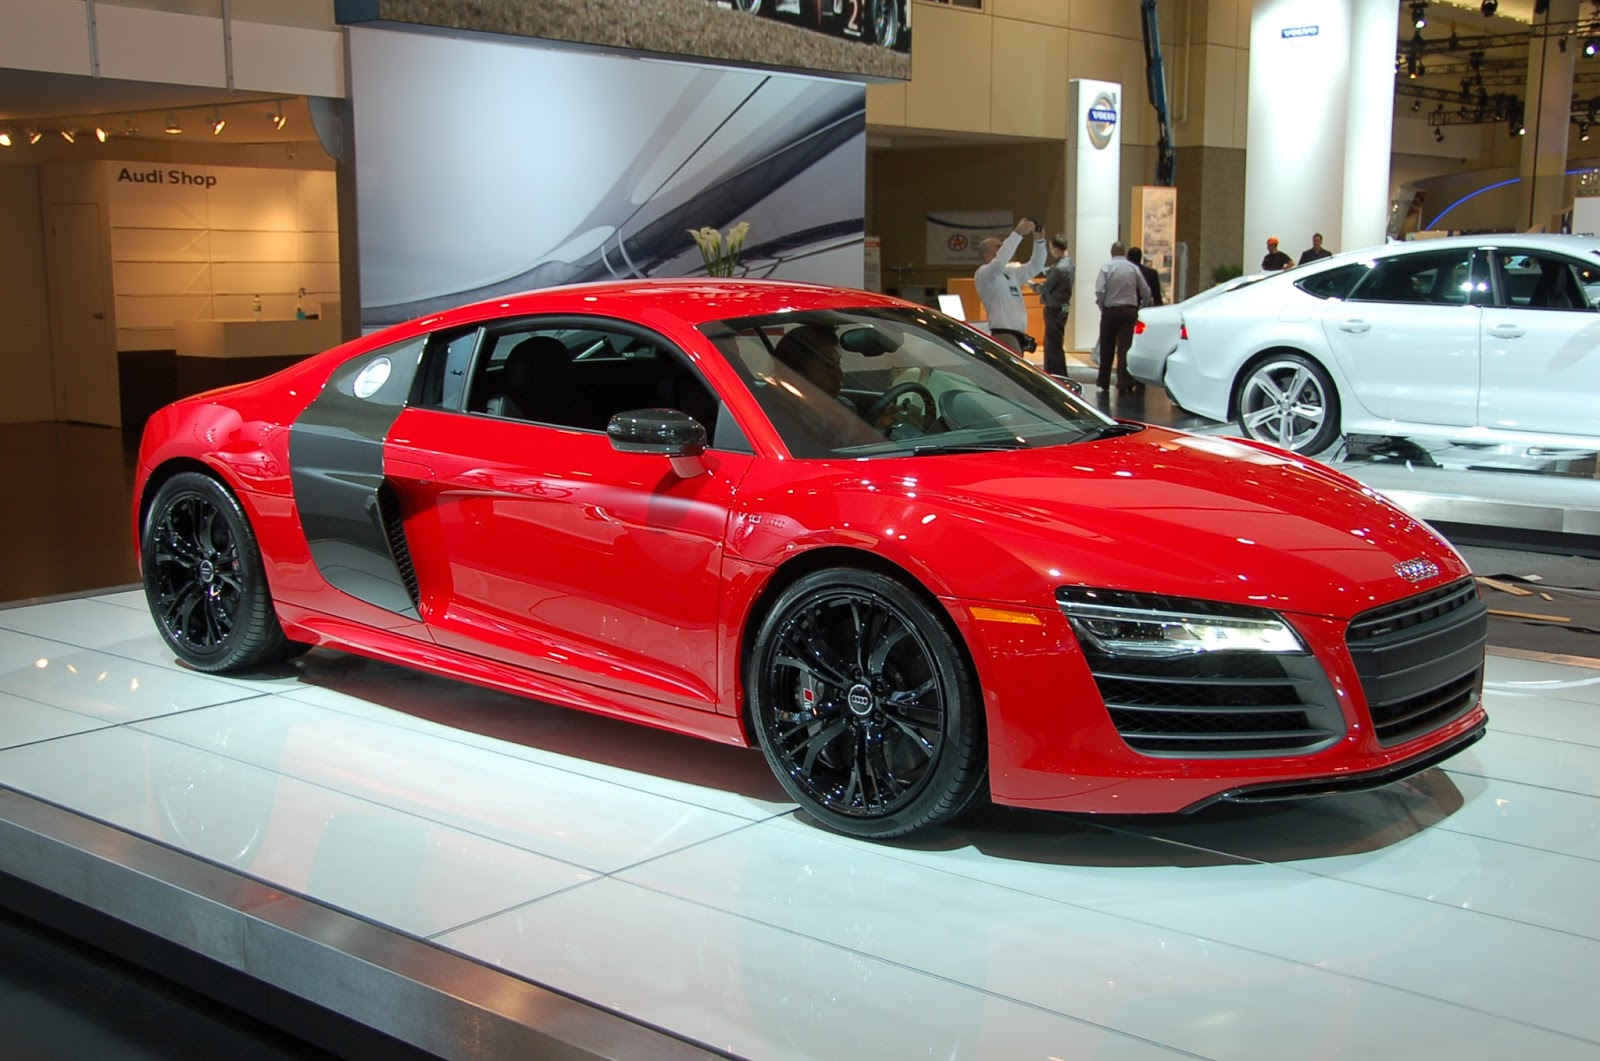 2014 audi r8 v10 review price release 2016 2017 release date car concept redesign. Black Bedroom Furniture Sets. Home Design Ideas